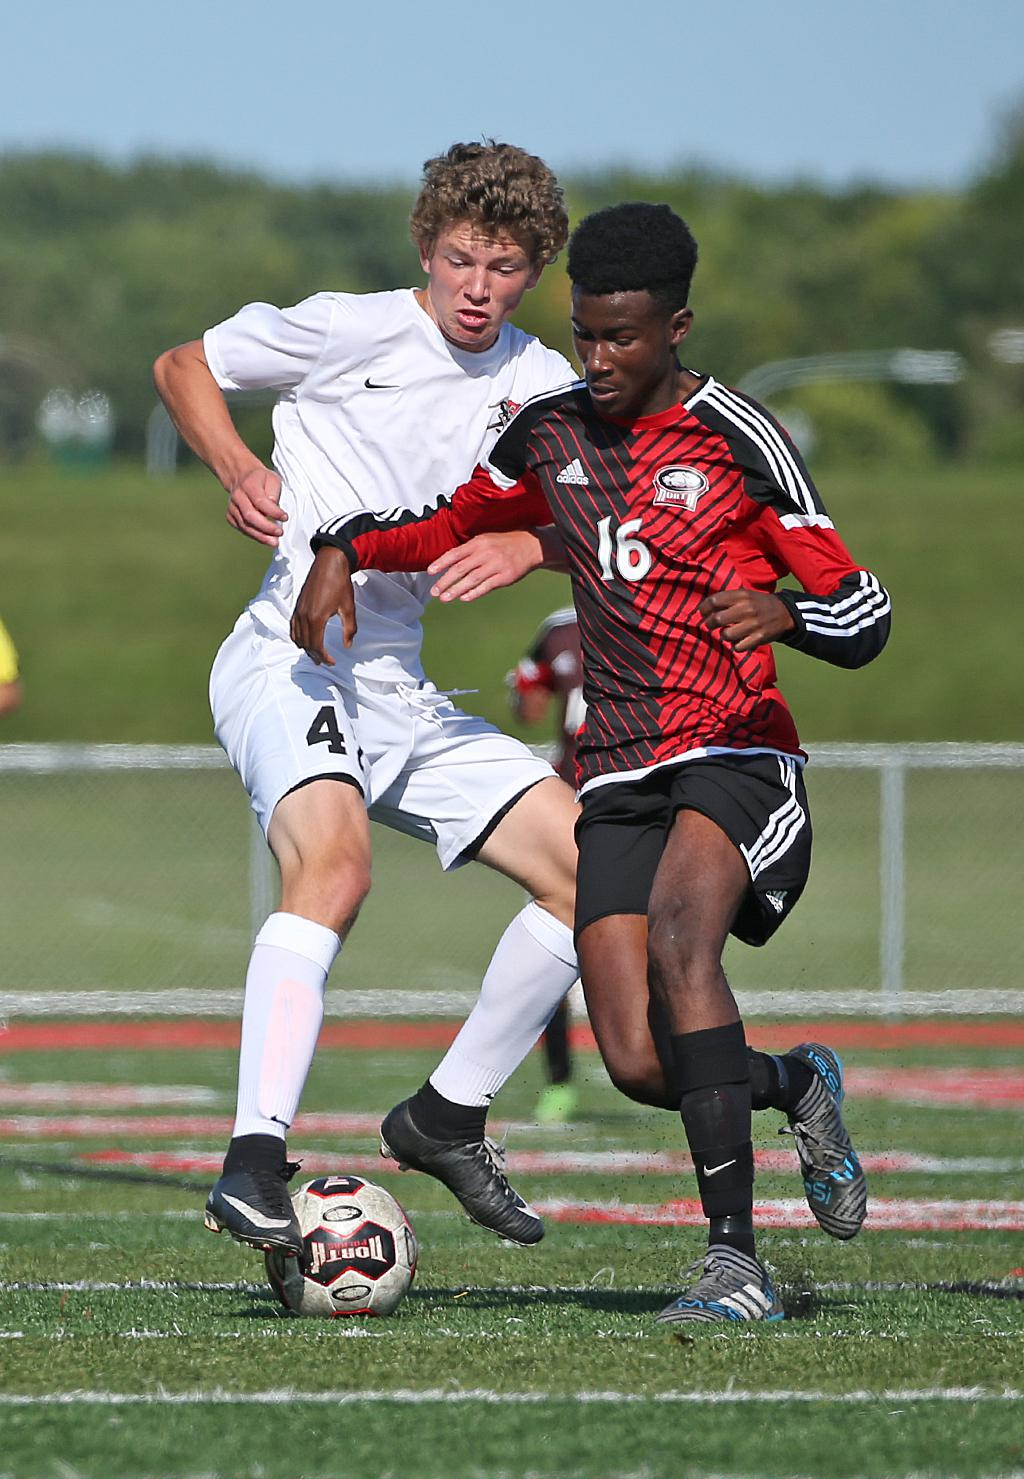 Ahmad Jalloh (16) battles for possession at midfield with Zach Lanigan. Jalloh scored the Polars' only goal in a 2-1 overtime loss to the Greyhounds at Polar Field in North St. Paul. Photo by Cheryl Myers, SportsEngine